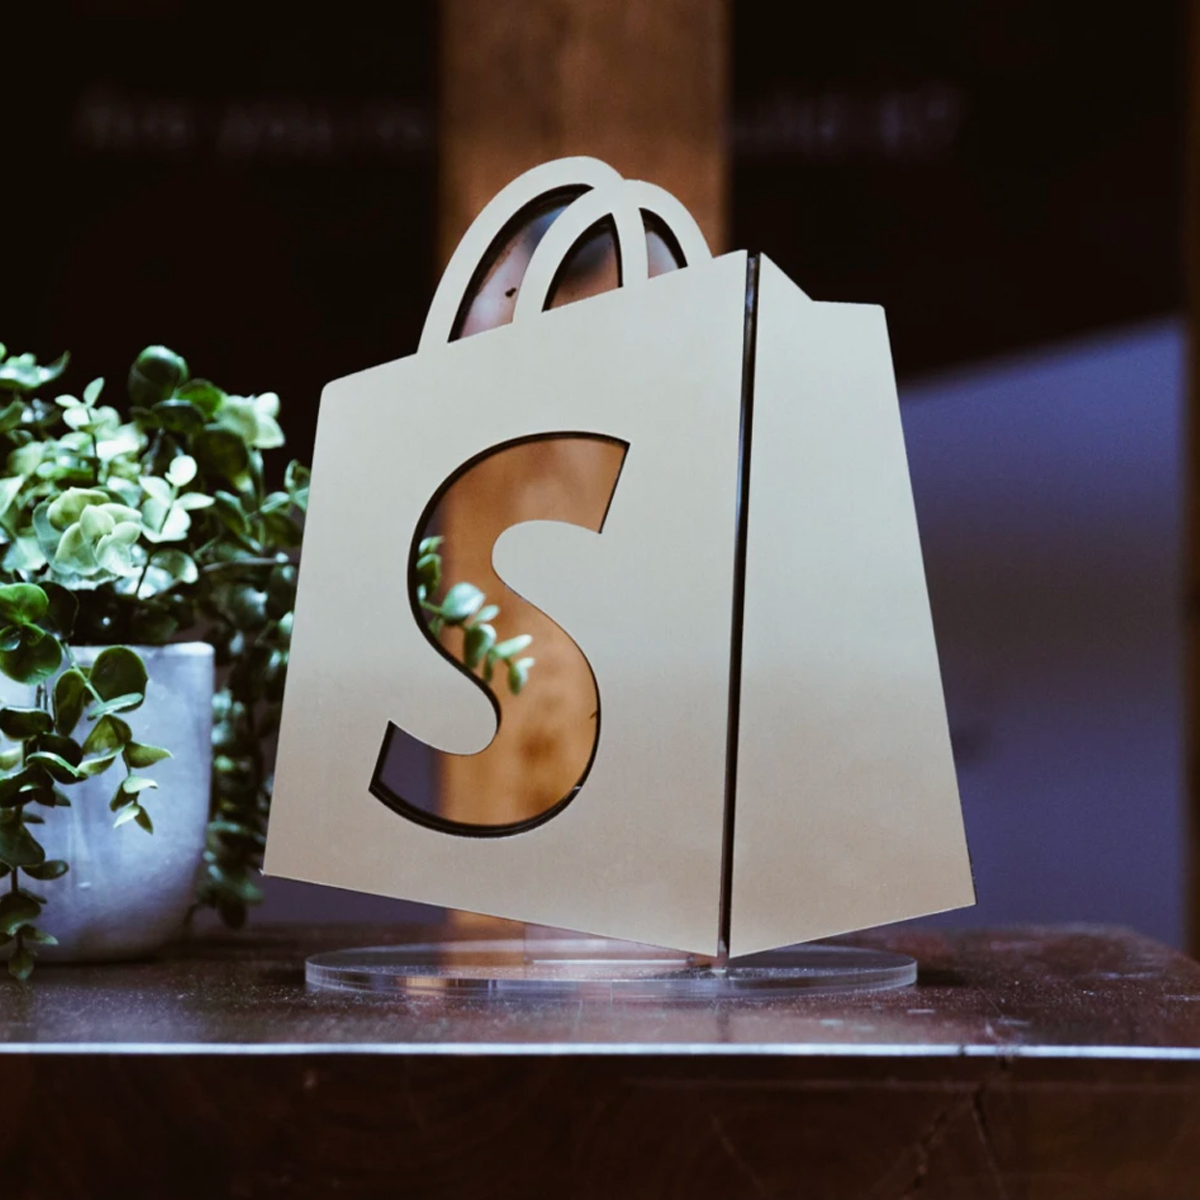 New Bambuser App for Shopify Enables Platform Merchants to Seize the Live Video Shopping Opportunity